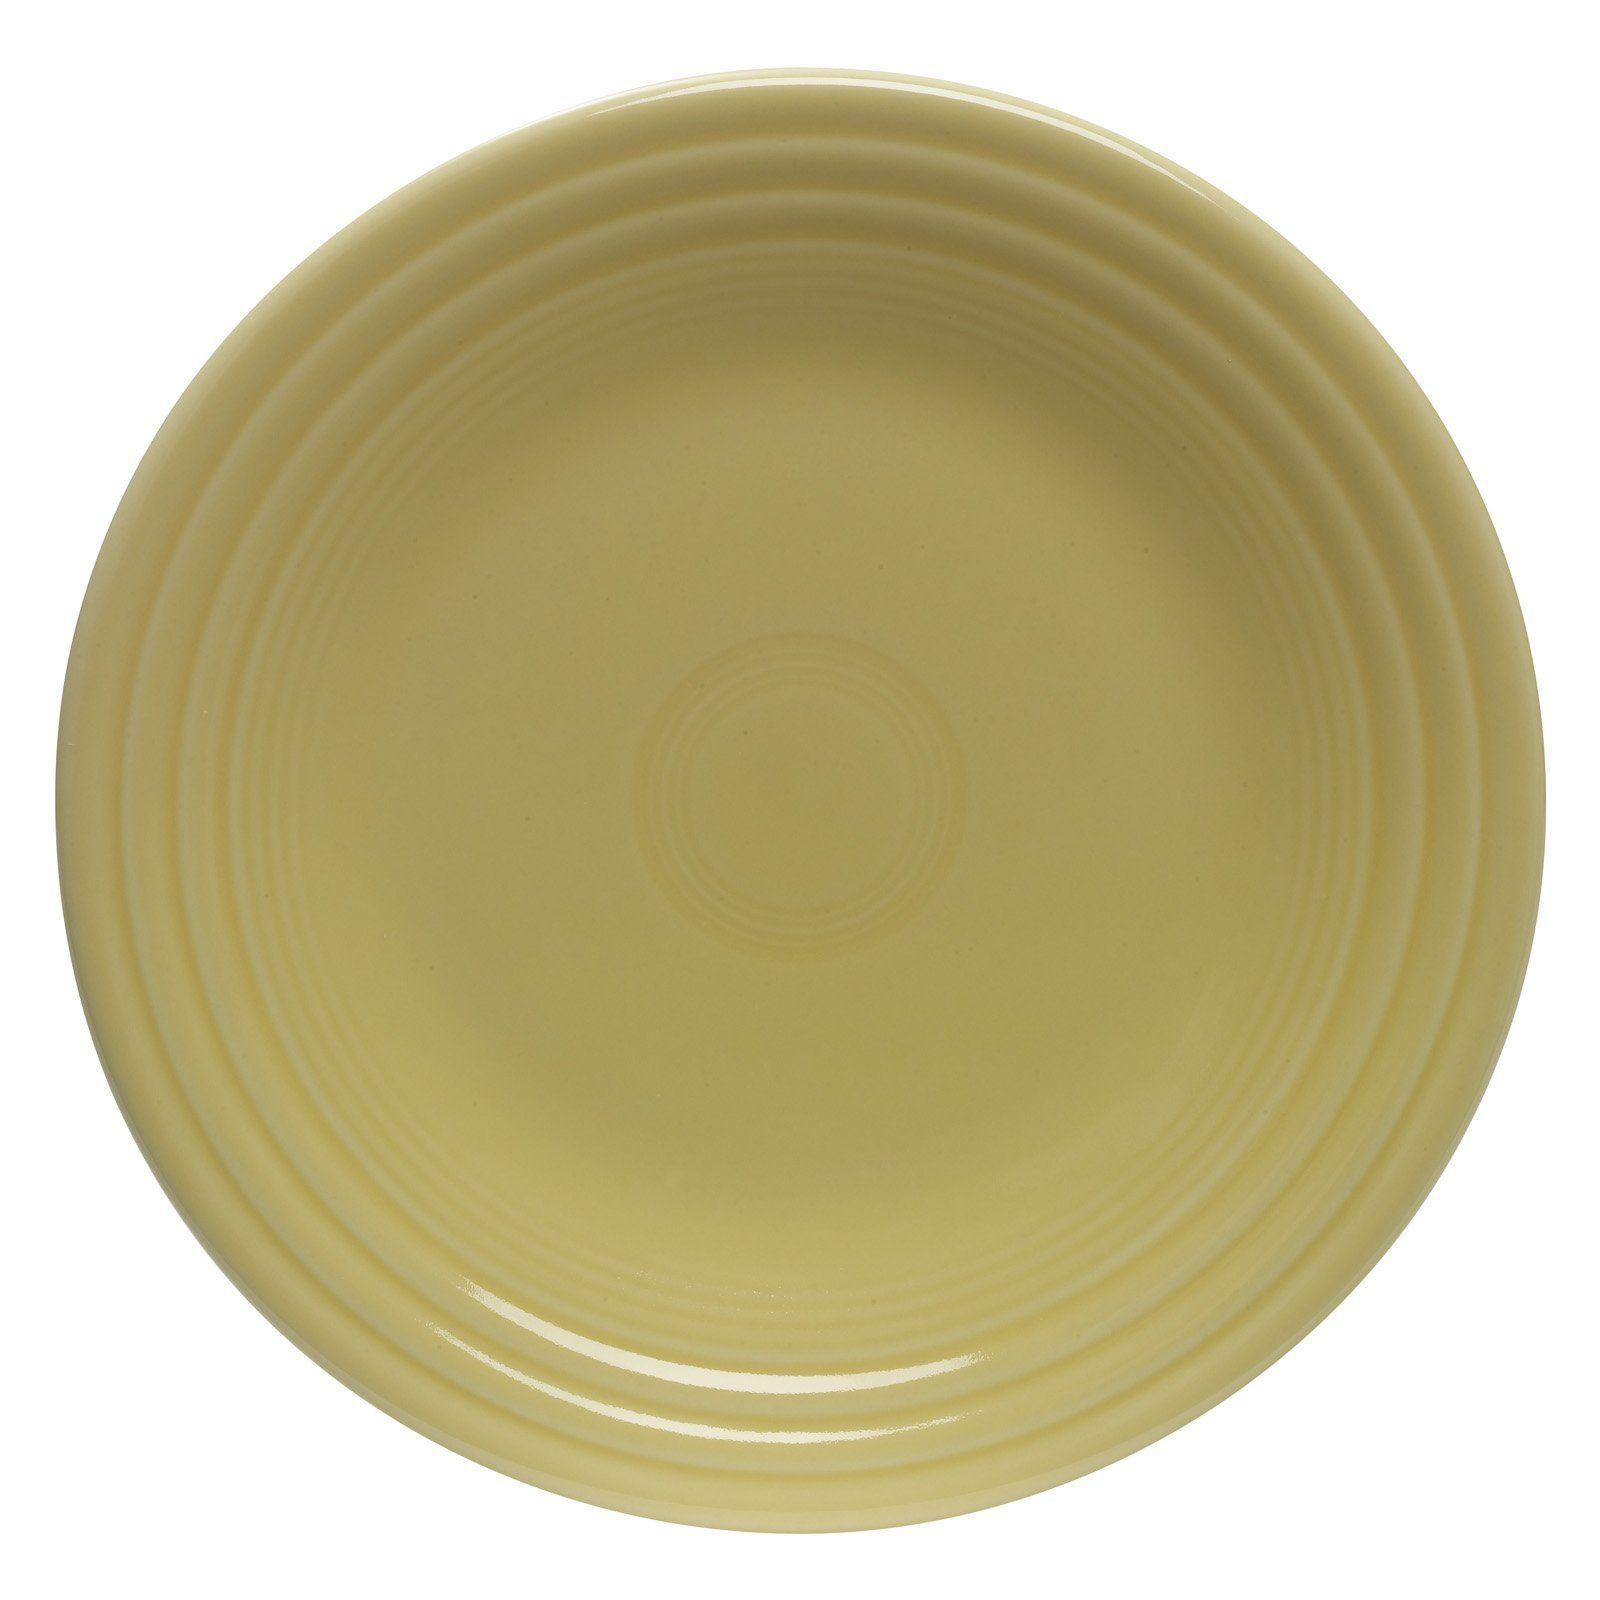 Fiesta Sunflower Luncheon Plate 9 in. - Set of 4 | from hayneedle.com